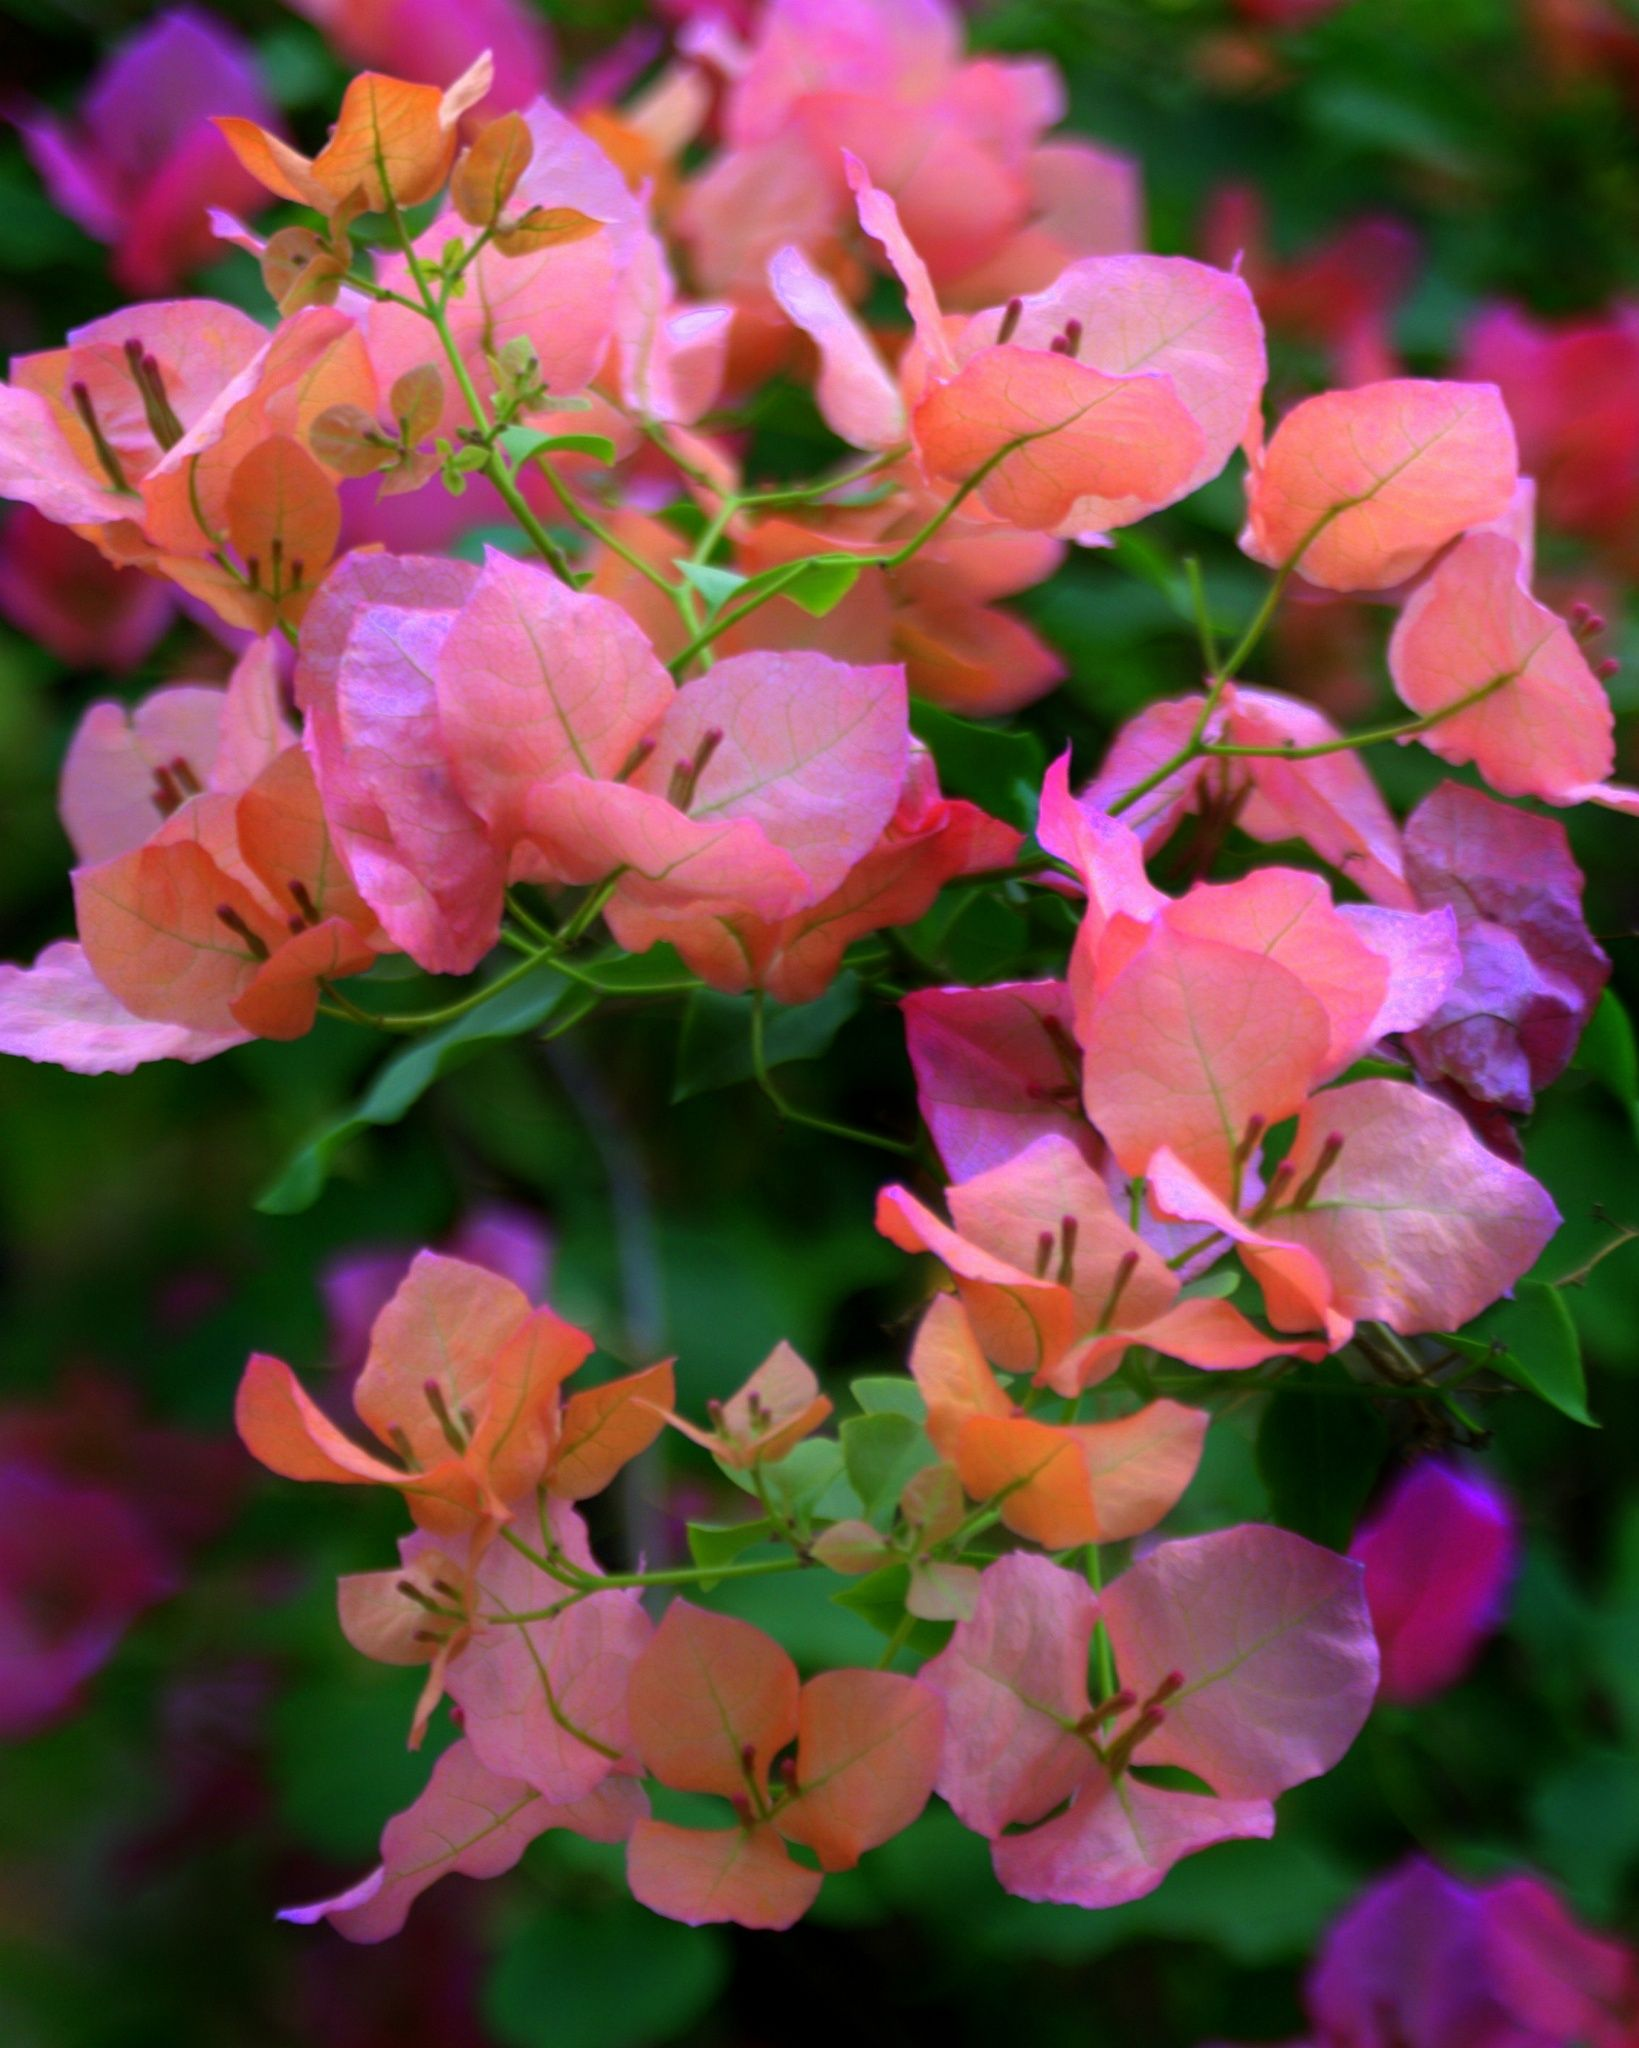 57 Amazing Beautiful Garden Ideas Inspiration And: Bougainvilla By Nate A On 500px